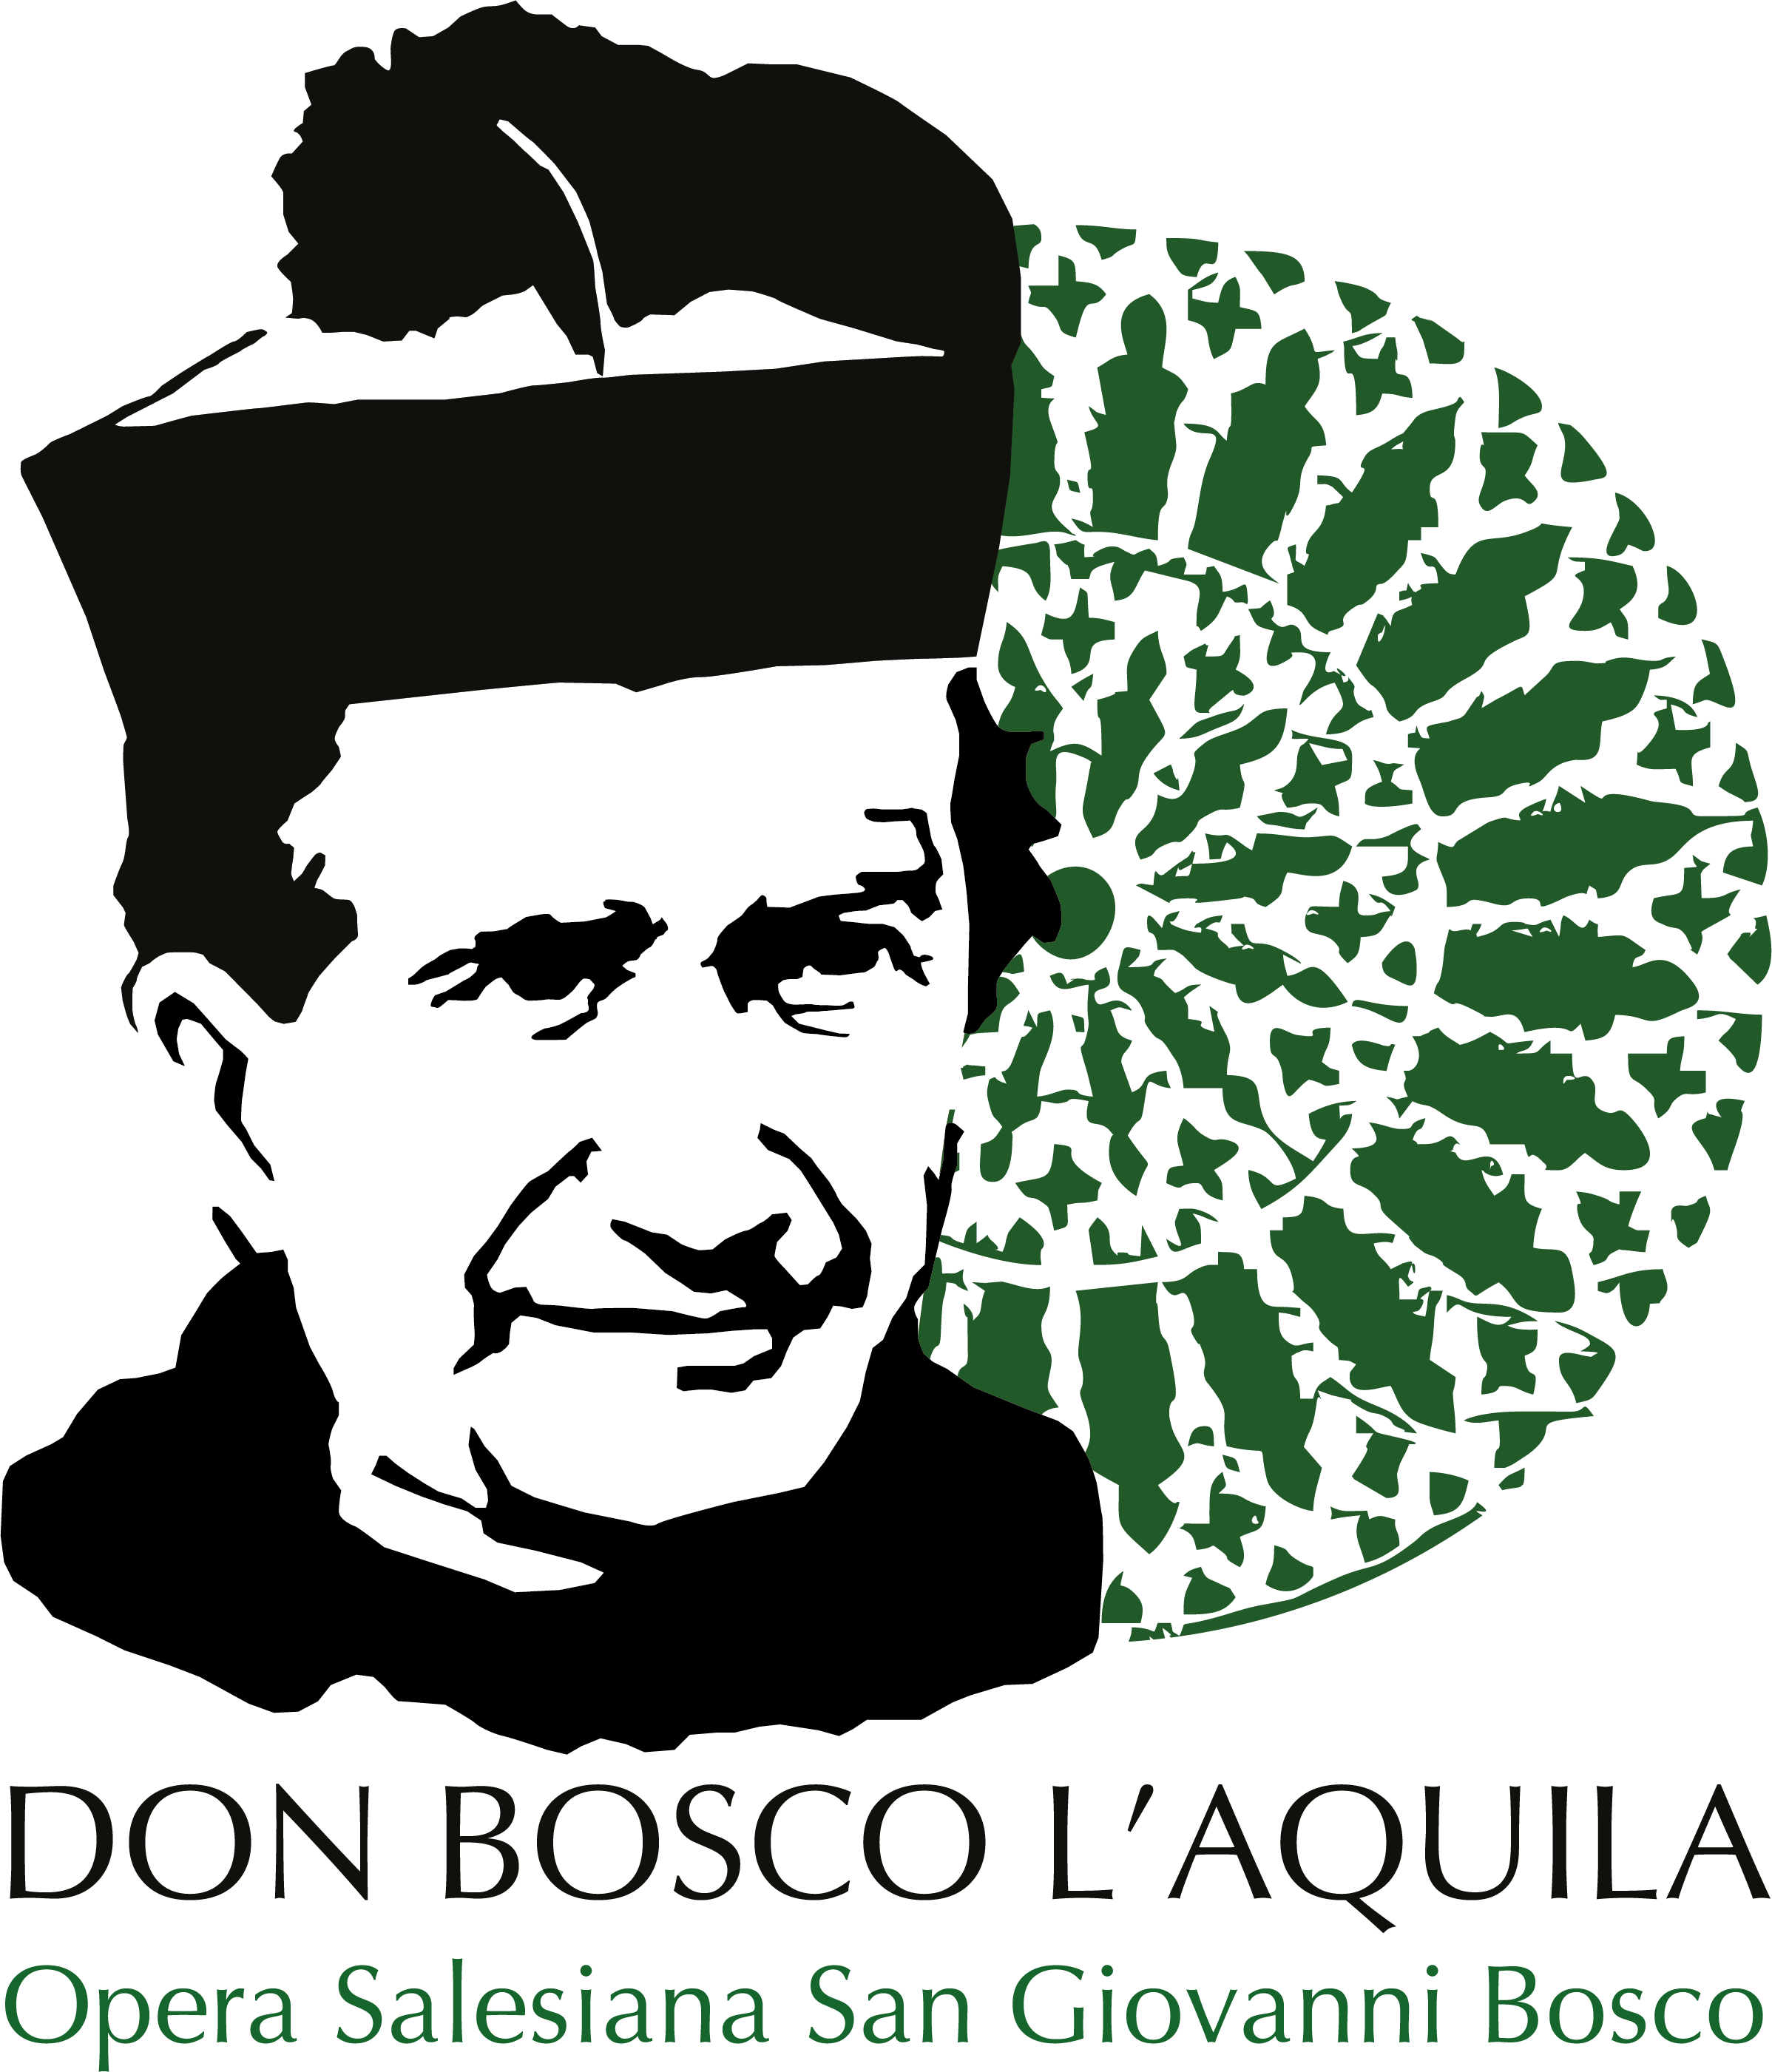 Don Bosco L'Aquila Banner